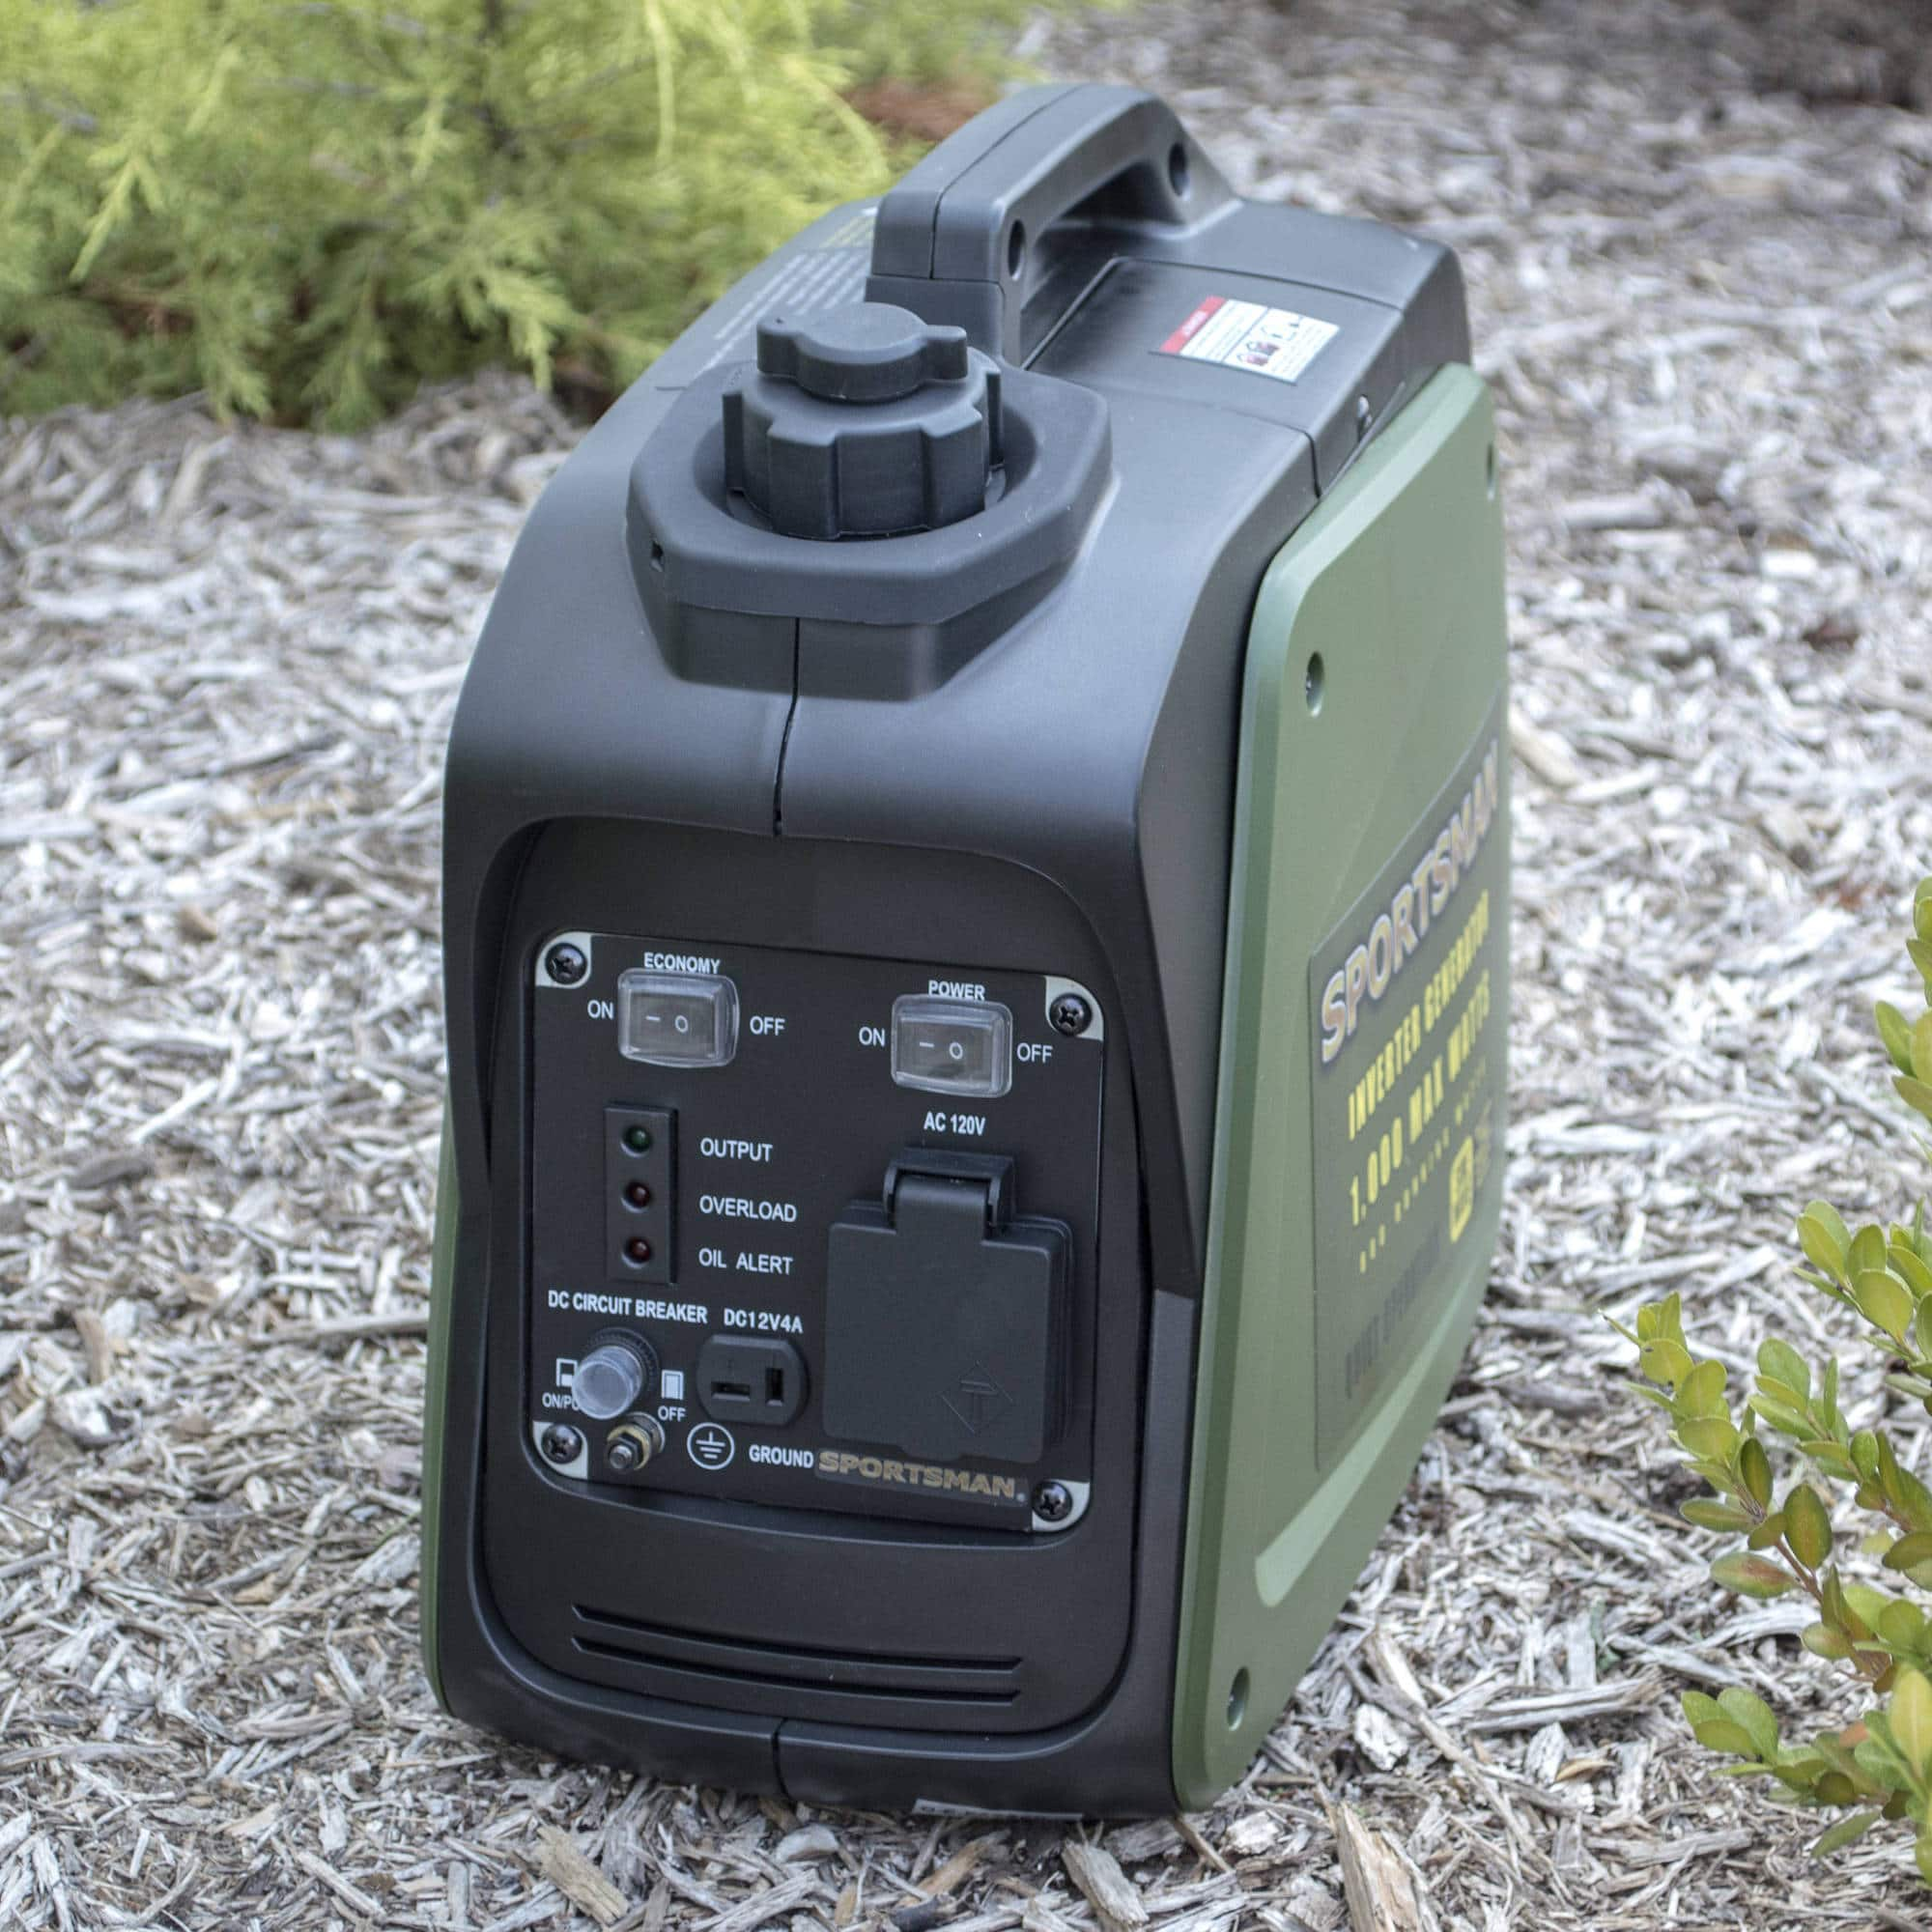 Sportsman 1,000-Watt Gasoline Powered Digital Inverter Generator $157 Walmart